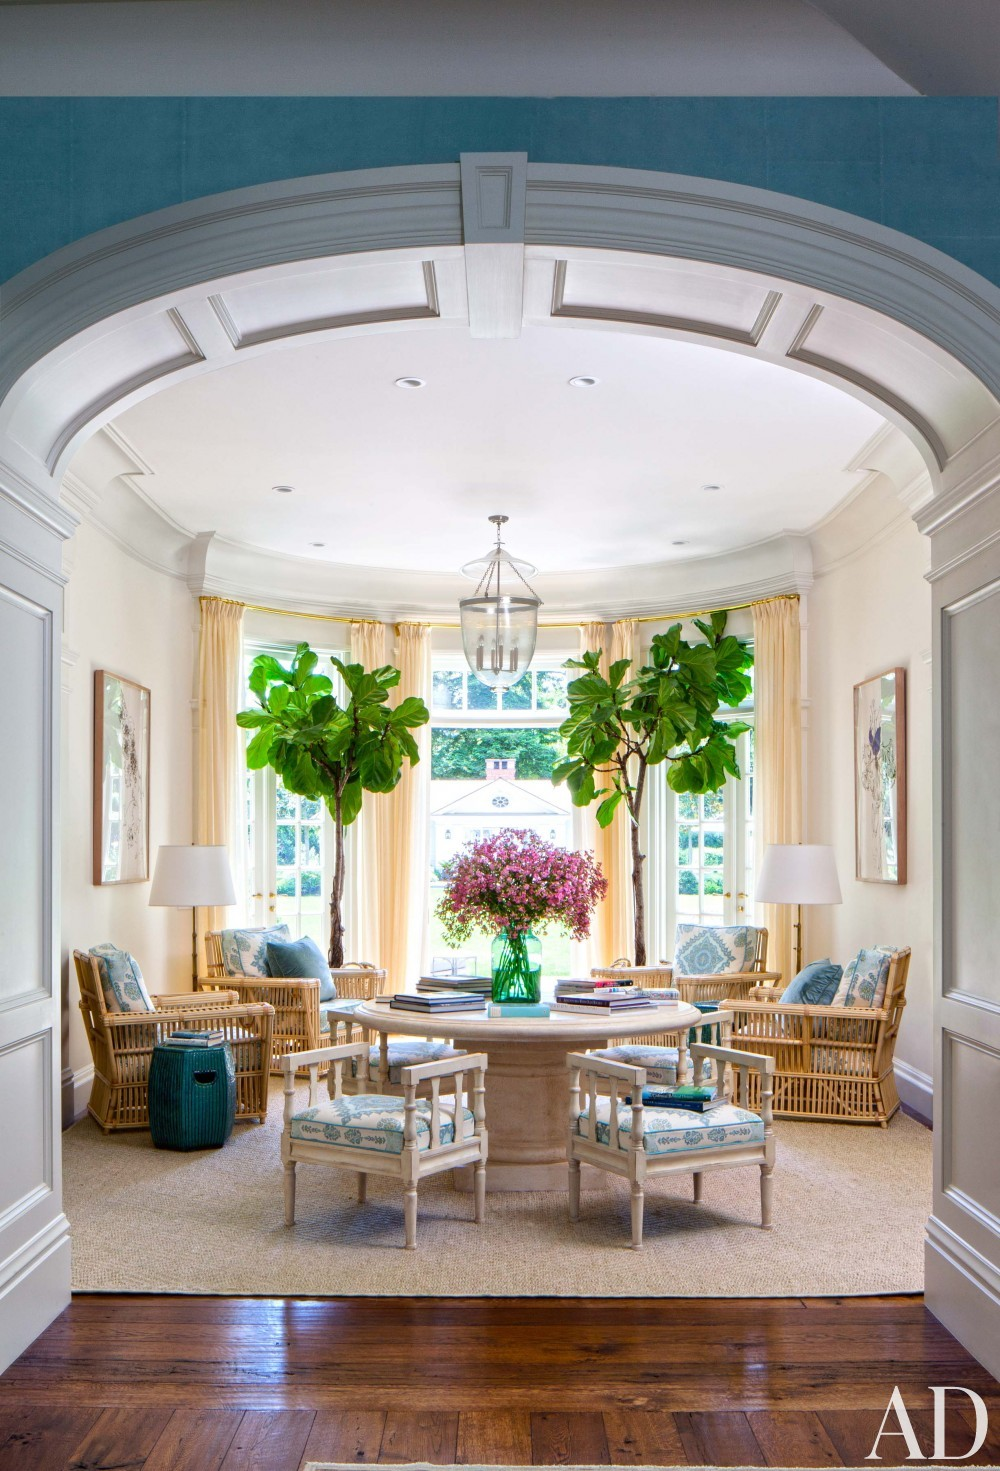 Cool Sunken Living Room Ideas For Your Dreamed House: Home Tour: A Dreamy Country Estate In Sunny California